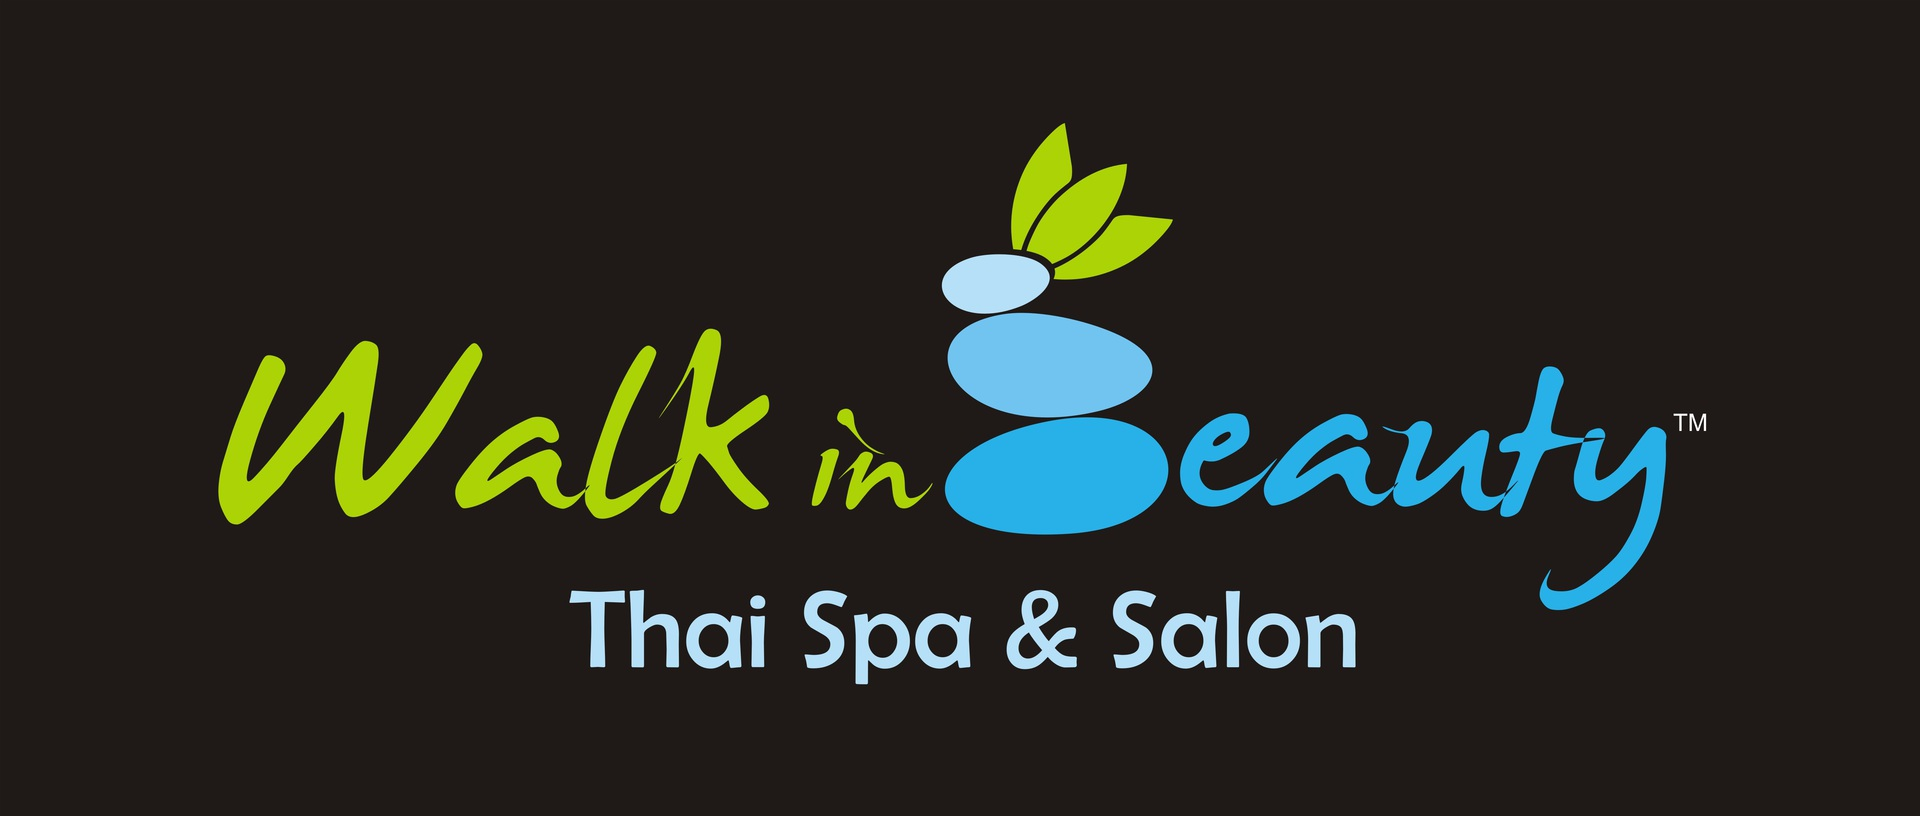 Walk In Beauty Spa And Salon - Indiranagar - Bangalore Image